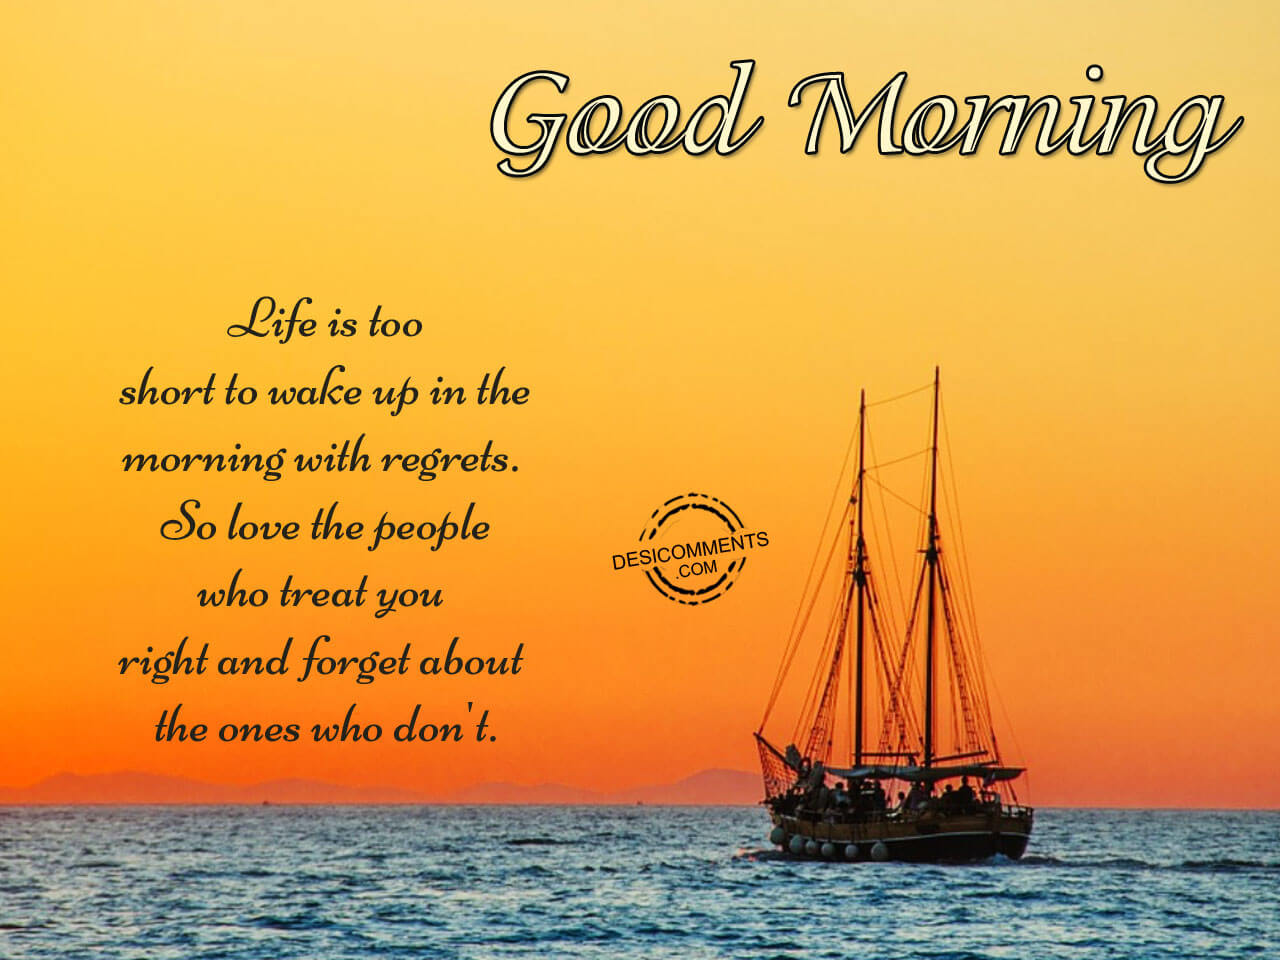 Good Morning Too : Good morning pictures images graphics page